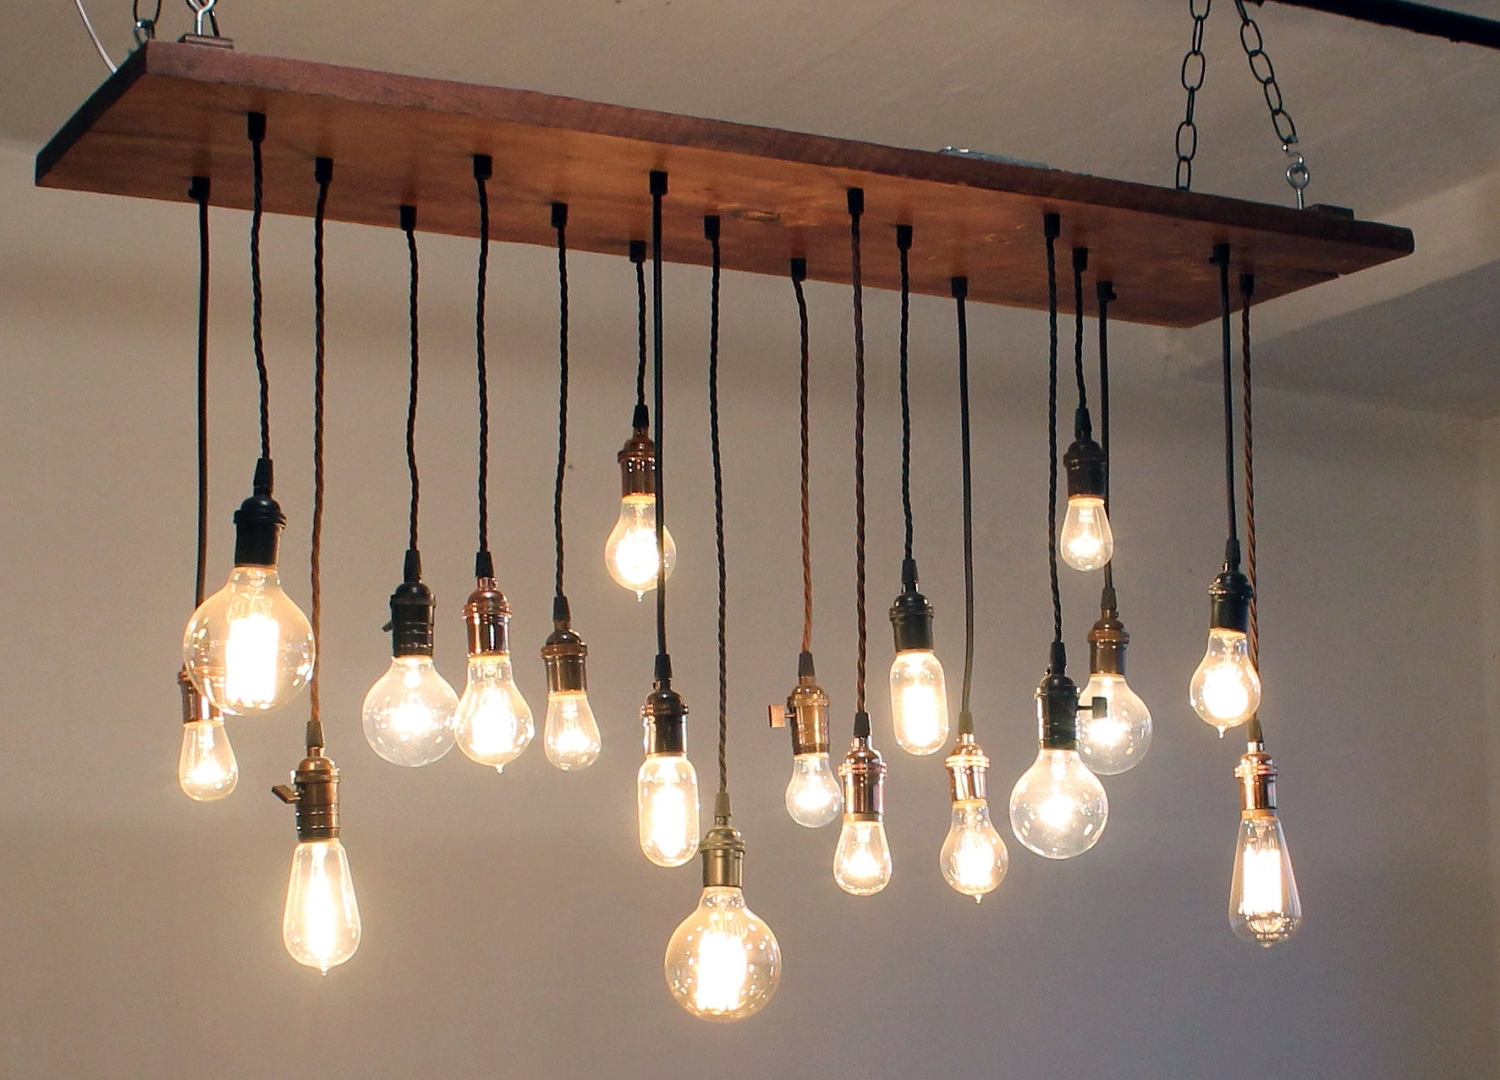 Famous Light Fitting Chandeliers Intended For Oversized Historic Light Bulbs – The Light House Gallery (View 13 of 15)